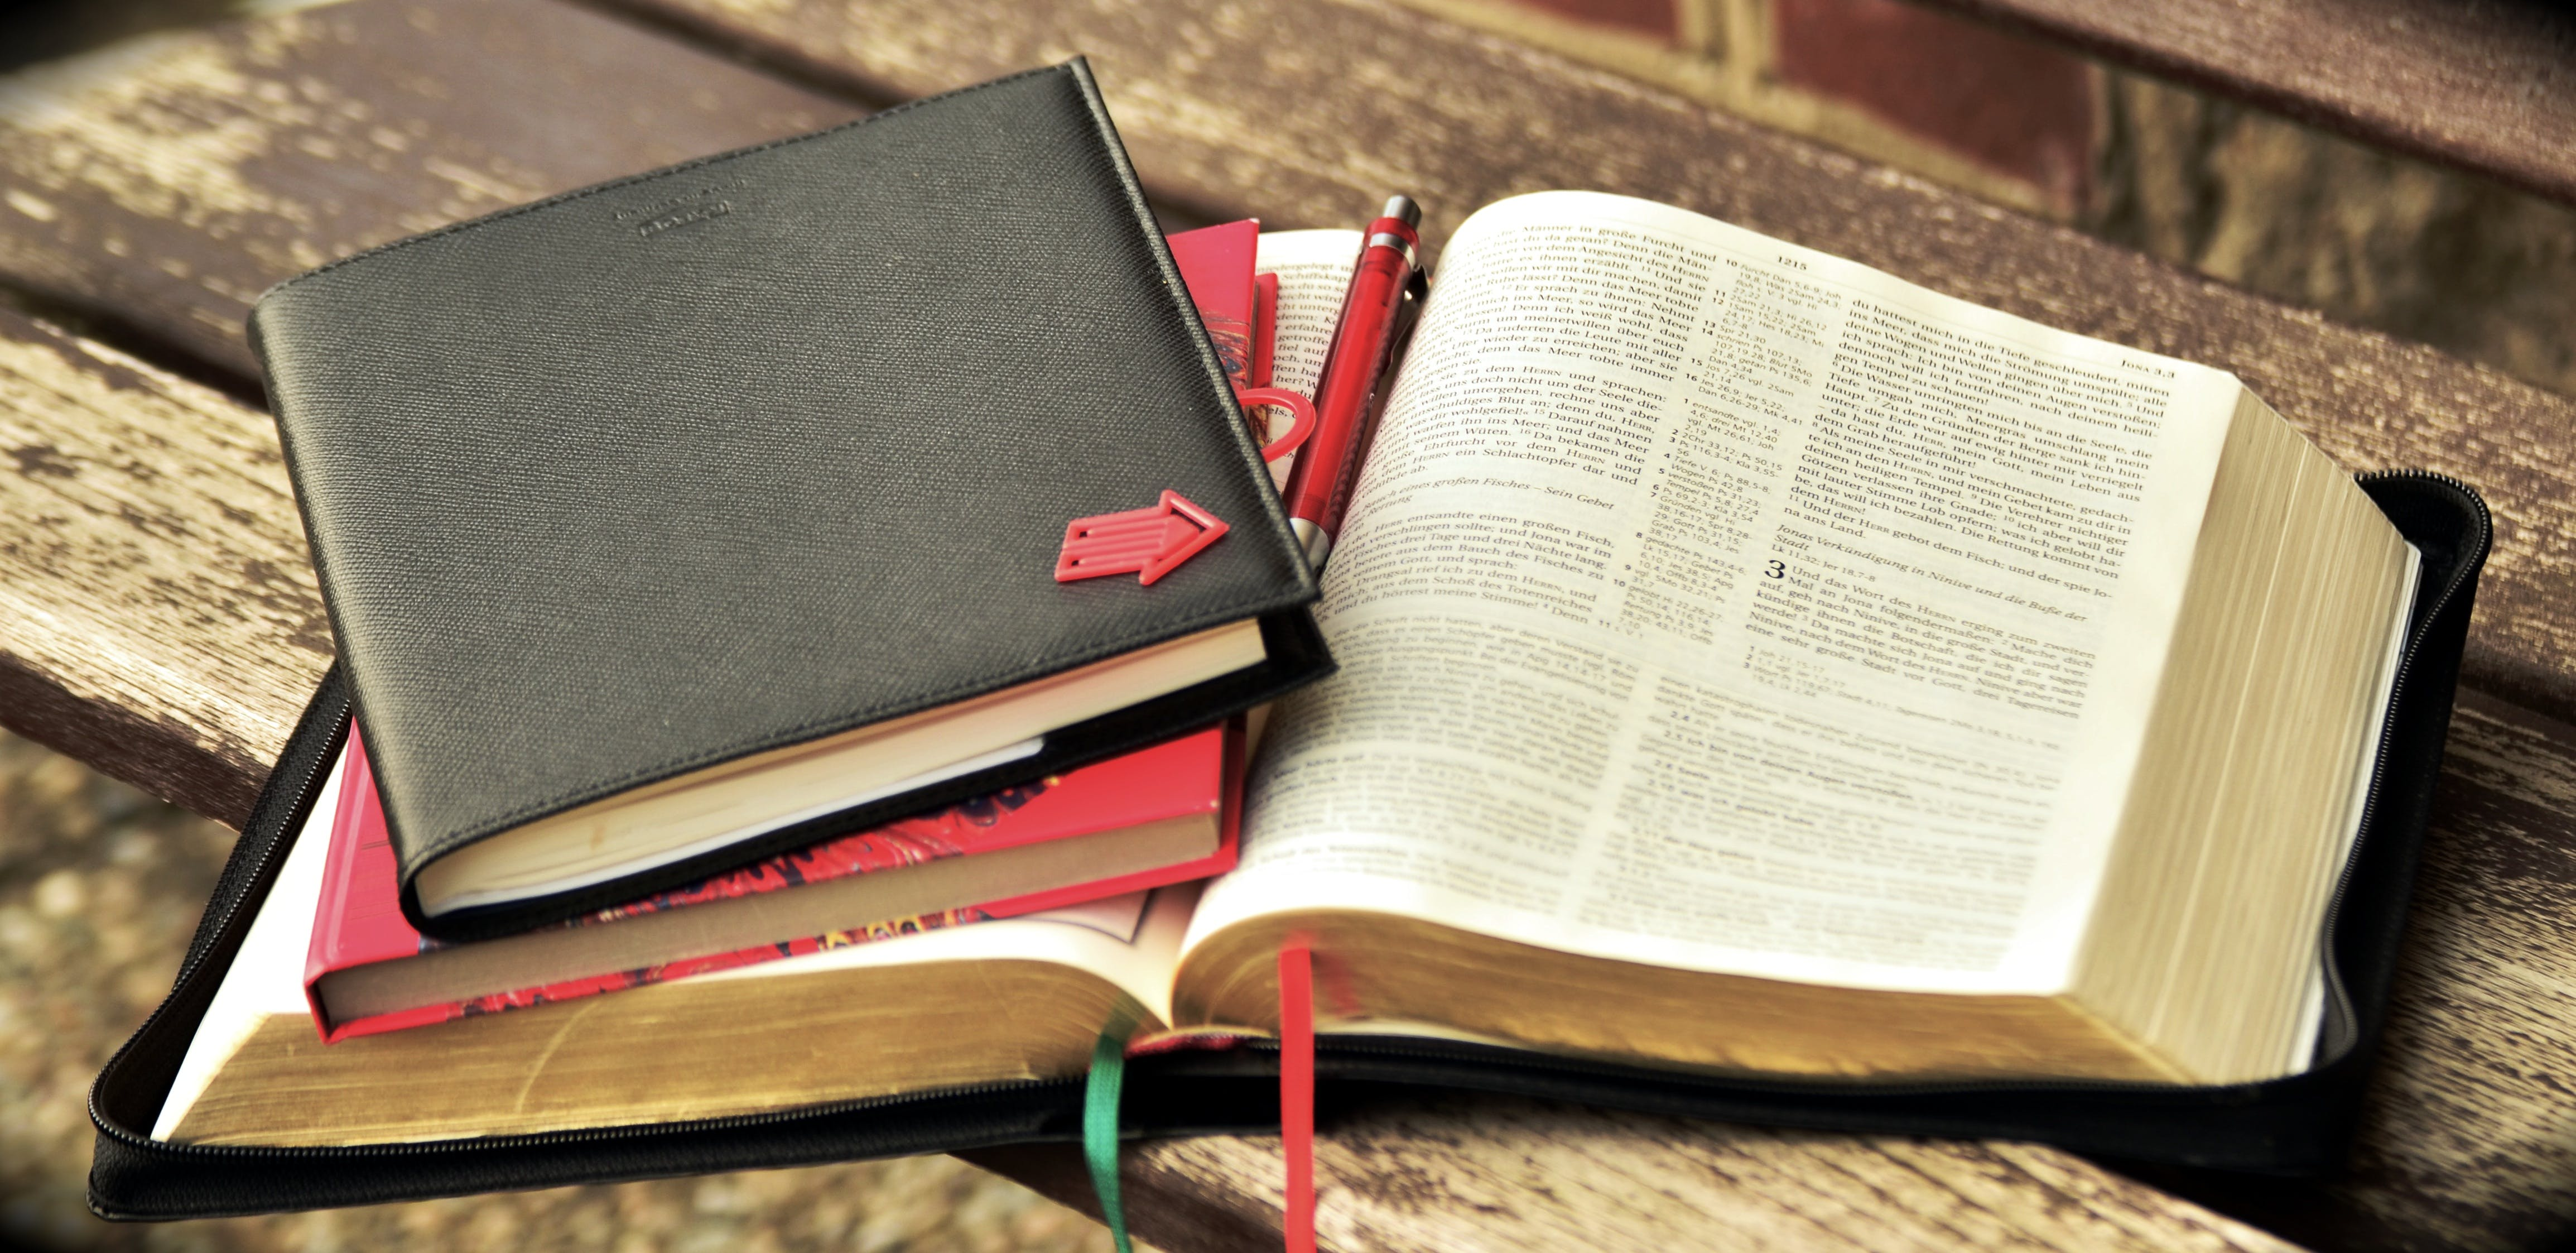 Black Leather Notebook With Red Arrow on Cover on Red Bookm and Bible